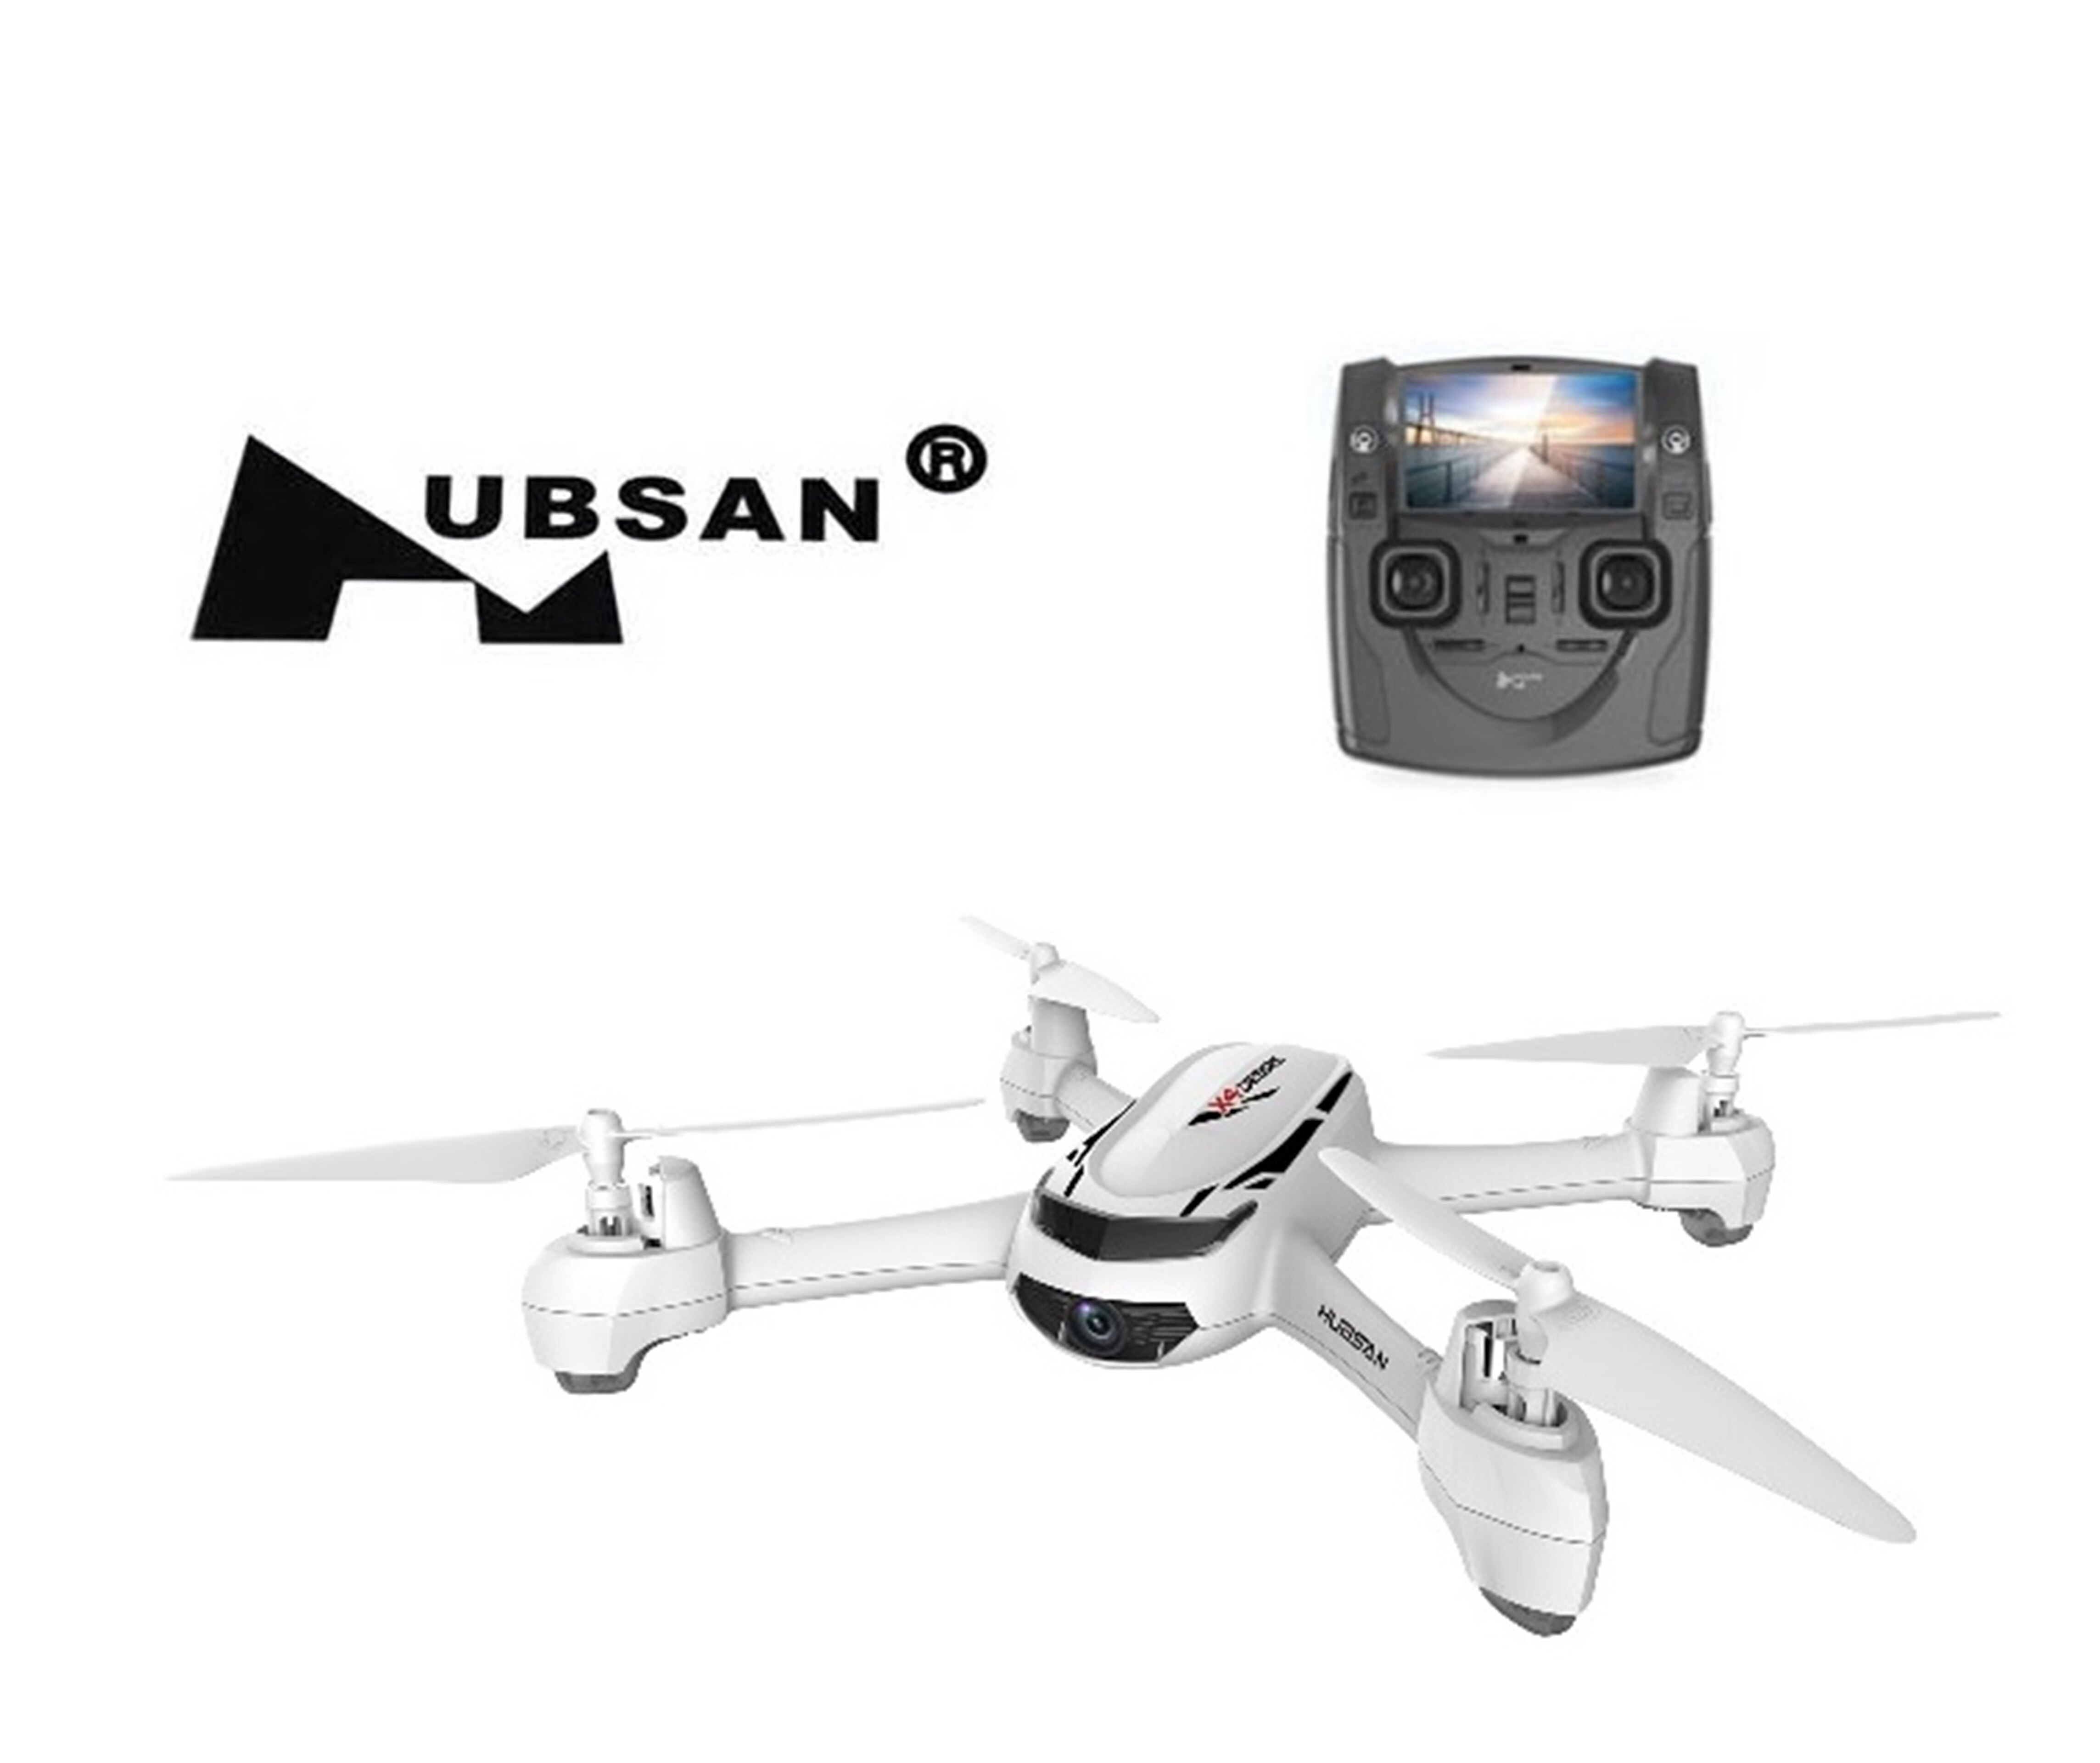 Hubsan X4 H502S FPV Real-time 5.8G GPS RC Quadcopter w/720P Camera Drone White 0